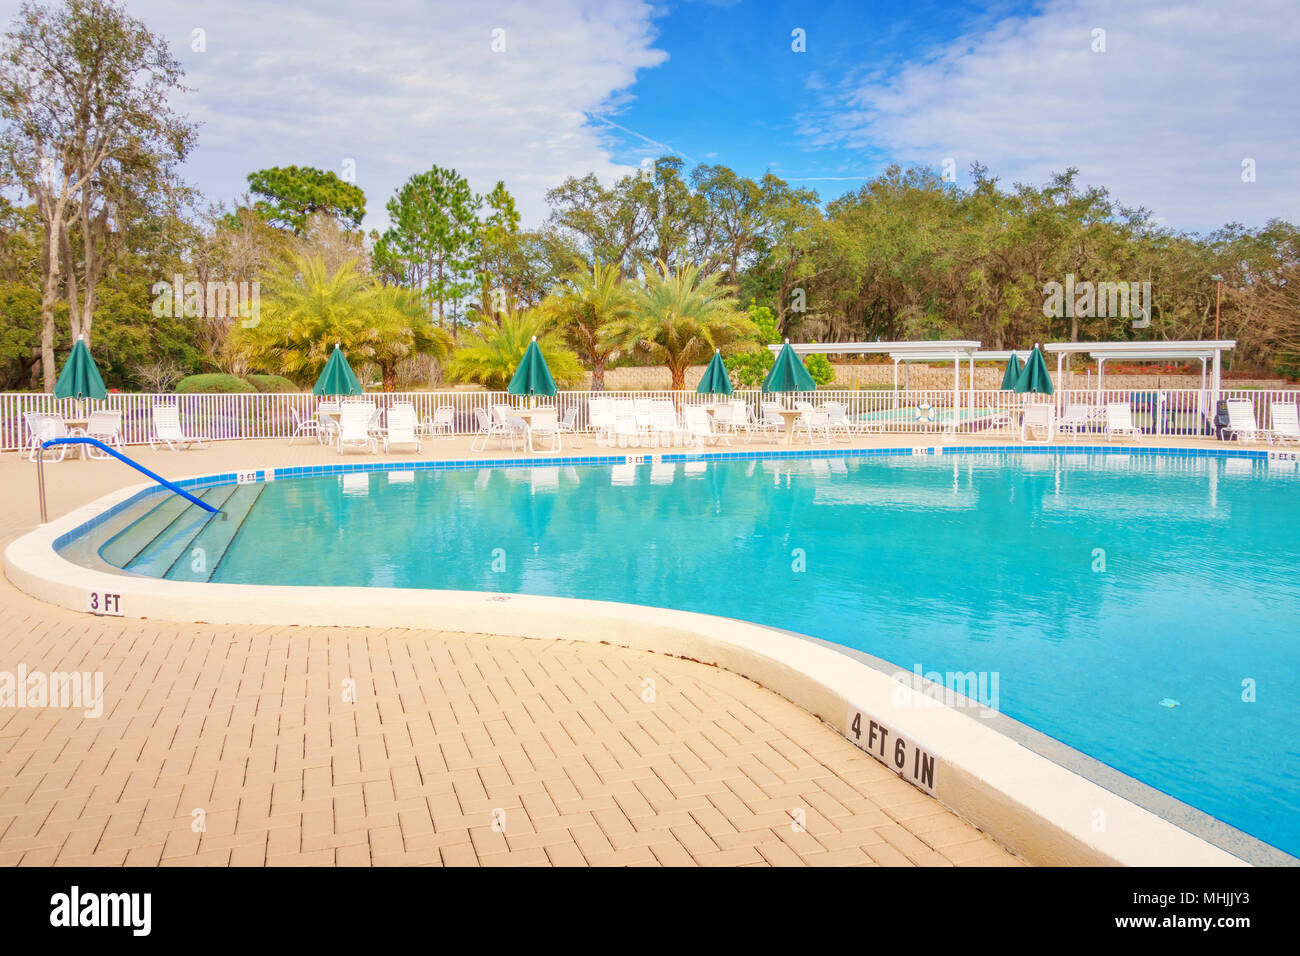 Community swimming pool stock photos community swimming - Spring hill recreation center swimming pool ...